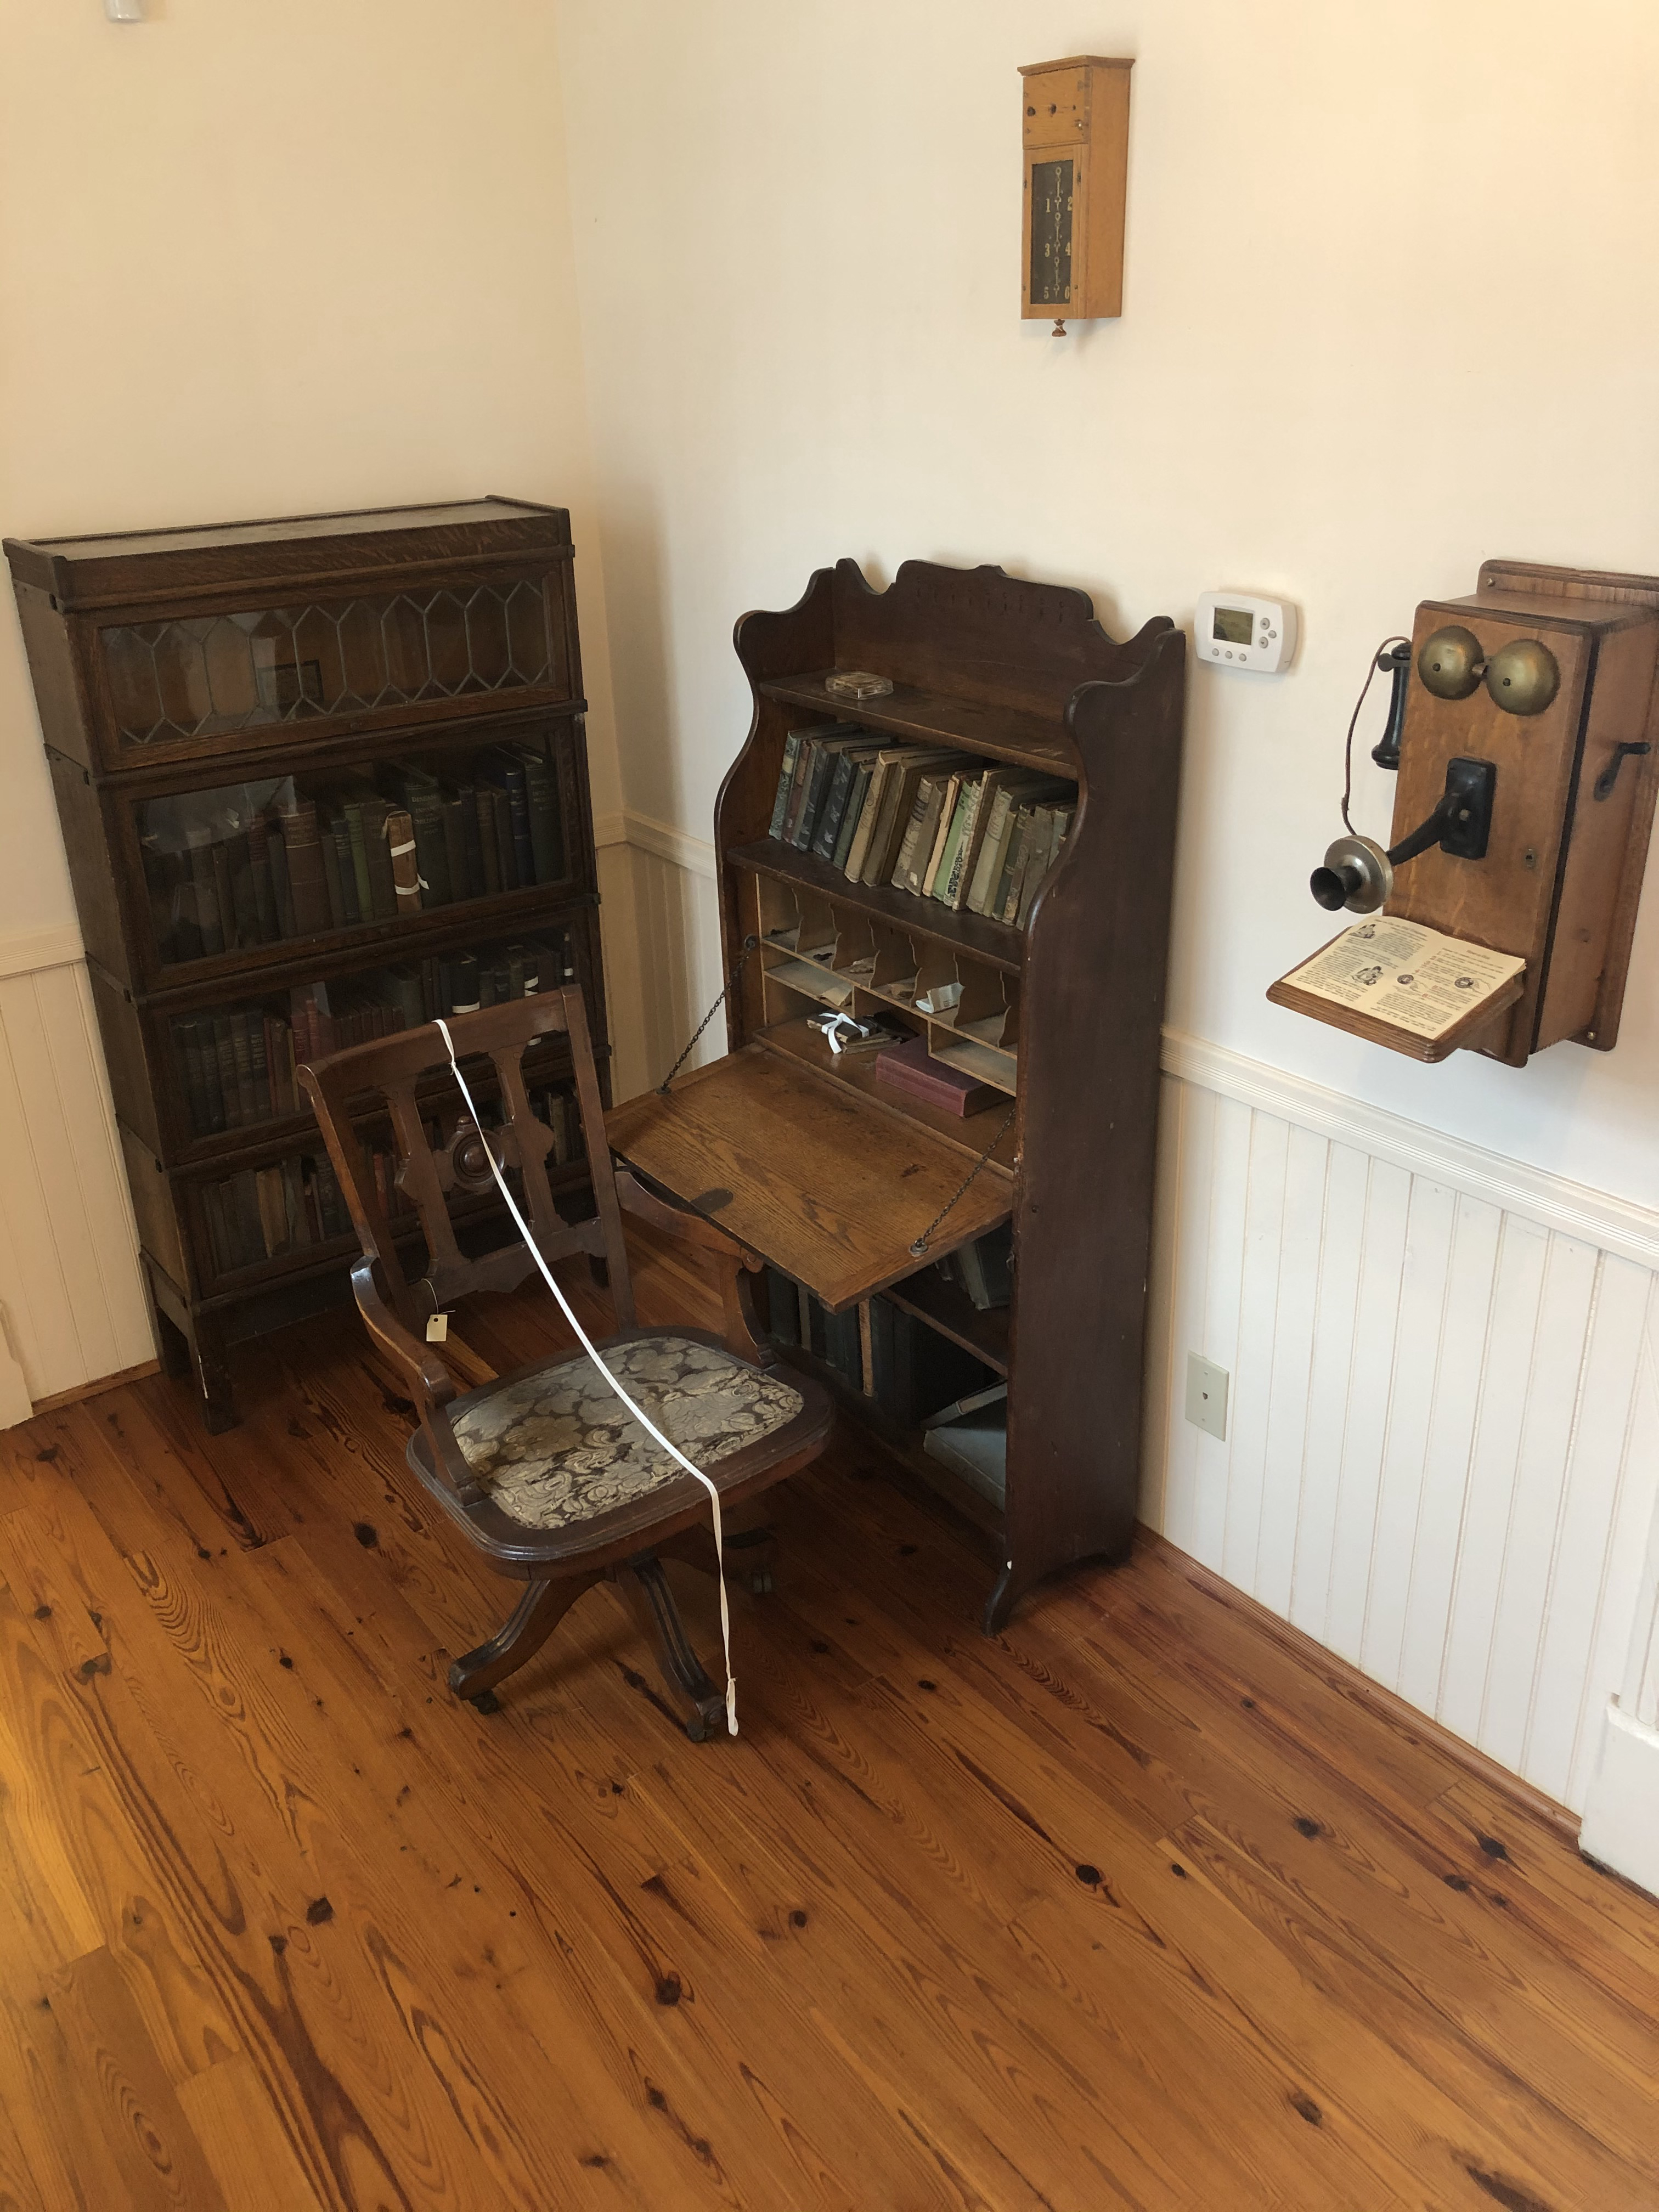 This is Dr. Pope's home patient examination area. Moving from left to right there is a bookcase that contains Dr. Pope's original medical books (pre-penicillin). Dr. Pope's original desk and chair, hanging above it is a maid's call box, and to the right is a replica of the model of phone the family would've had.